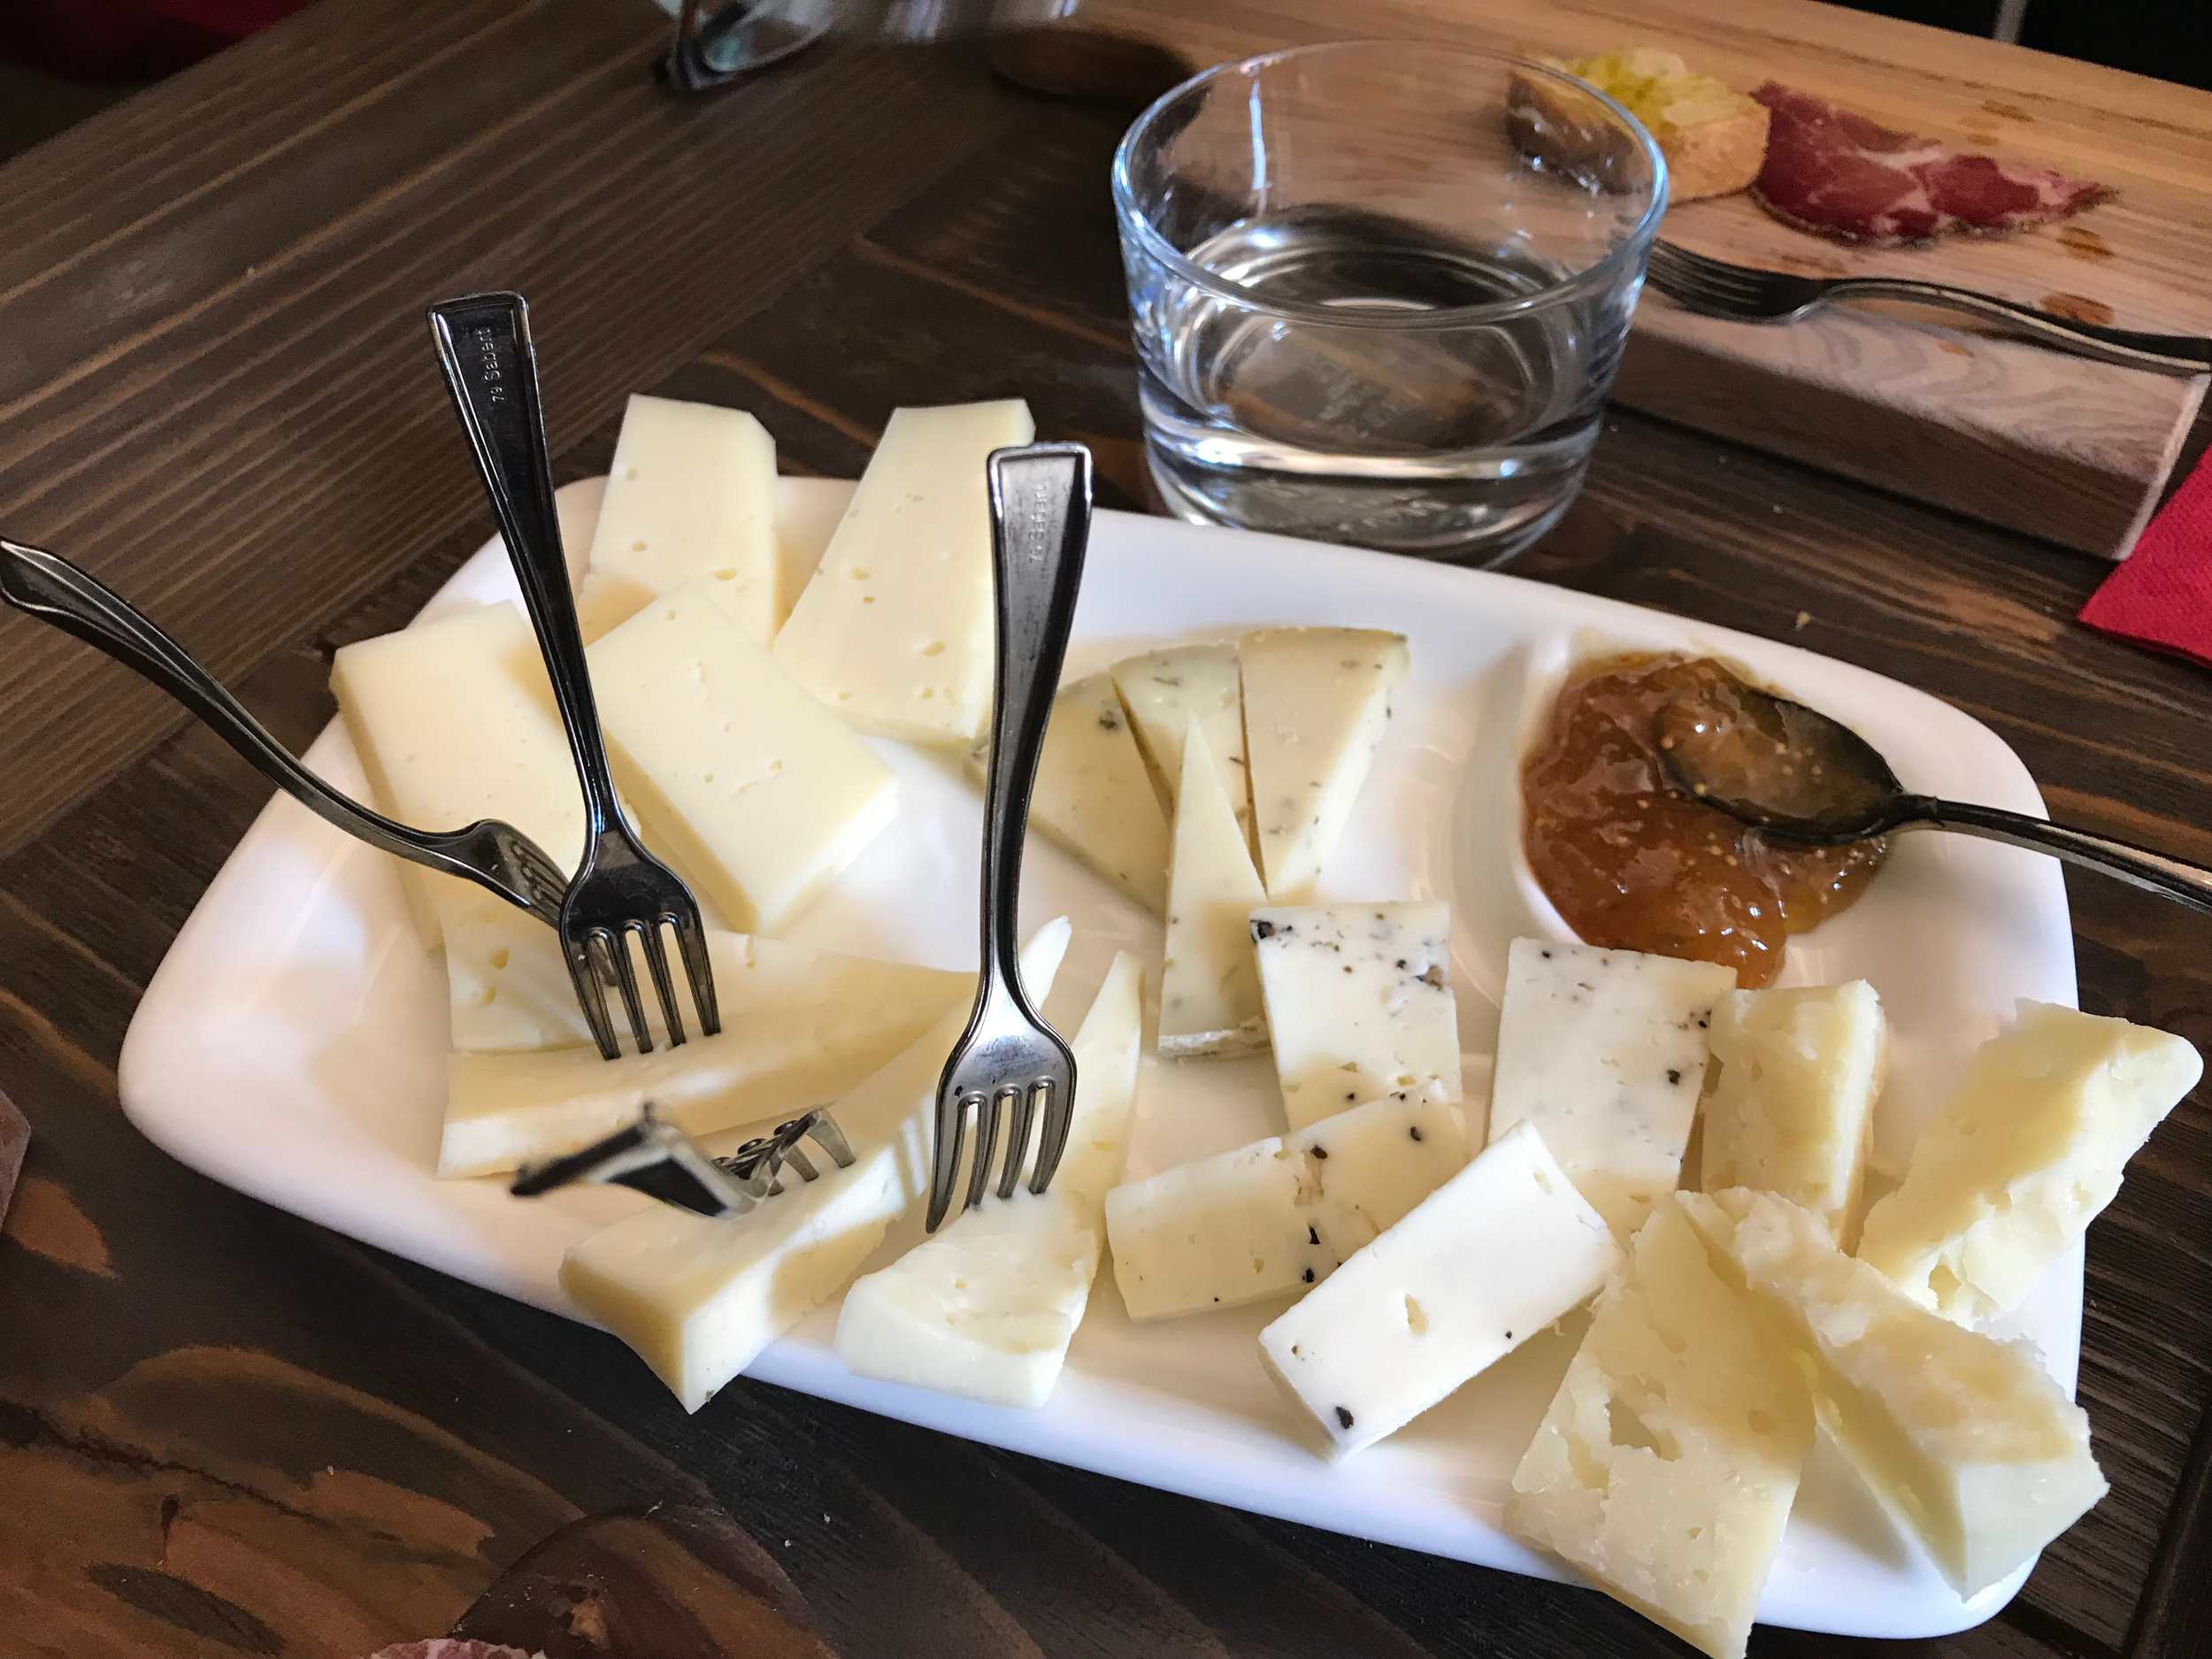 Umbria is (rightfully) proud of its many local cheeses.